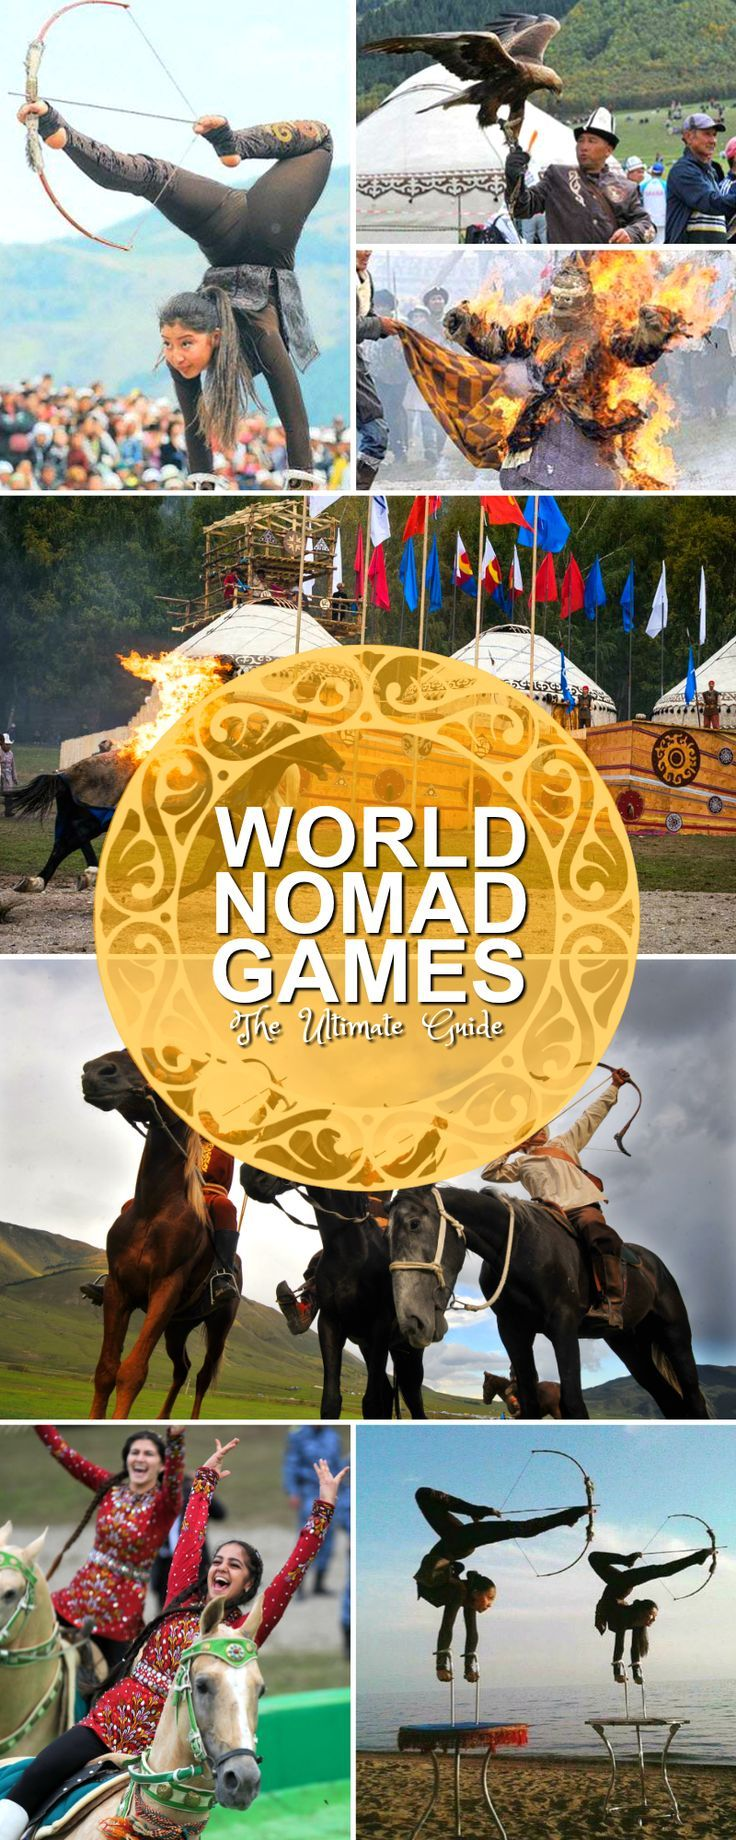 The World Nomad Games will be arriving back in Kyrgyzstan very soon ...